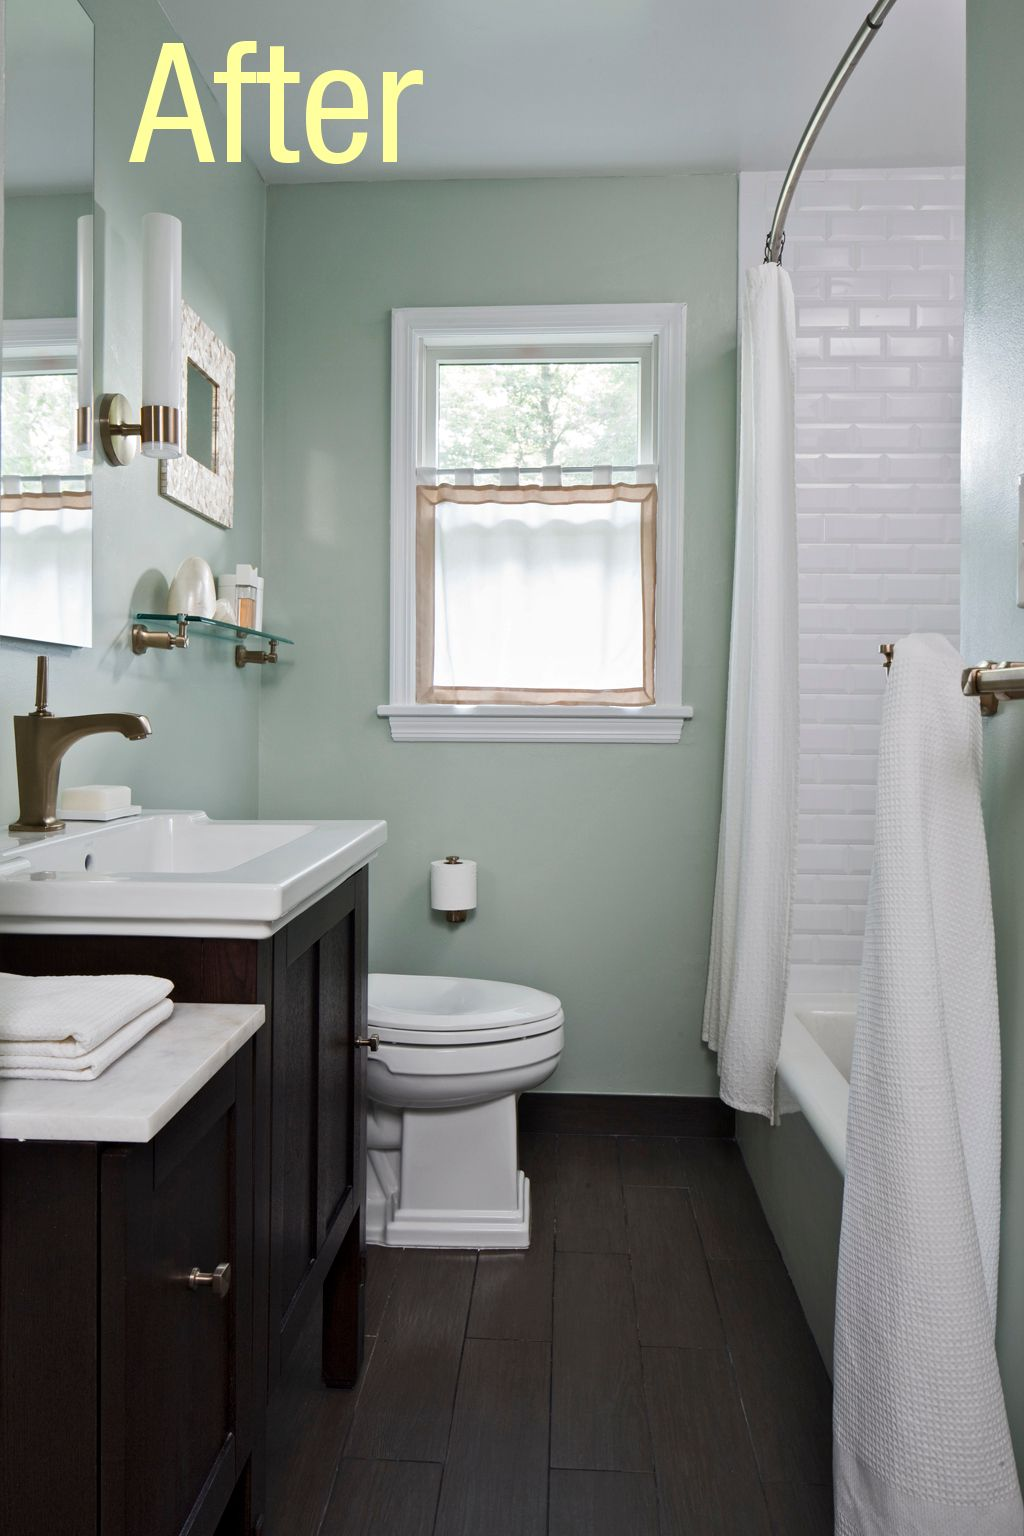 floor ideas for small bathrooms would you put wood floors in your bathrooms bathroom remodel pictures small bathroom 3465